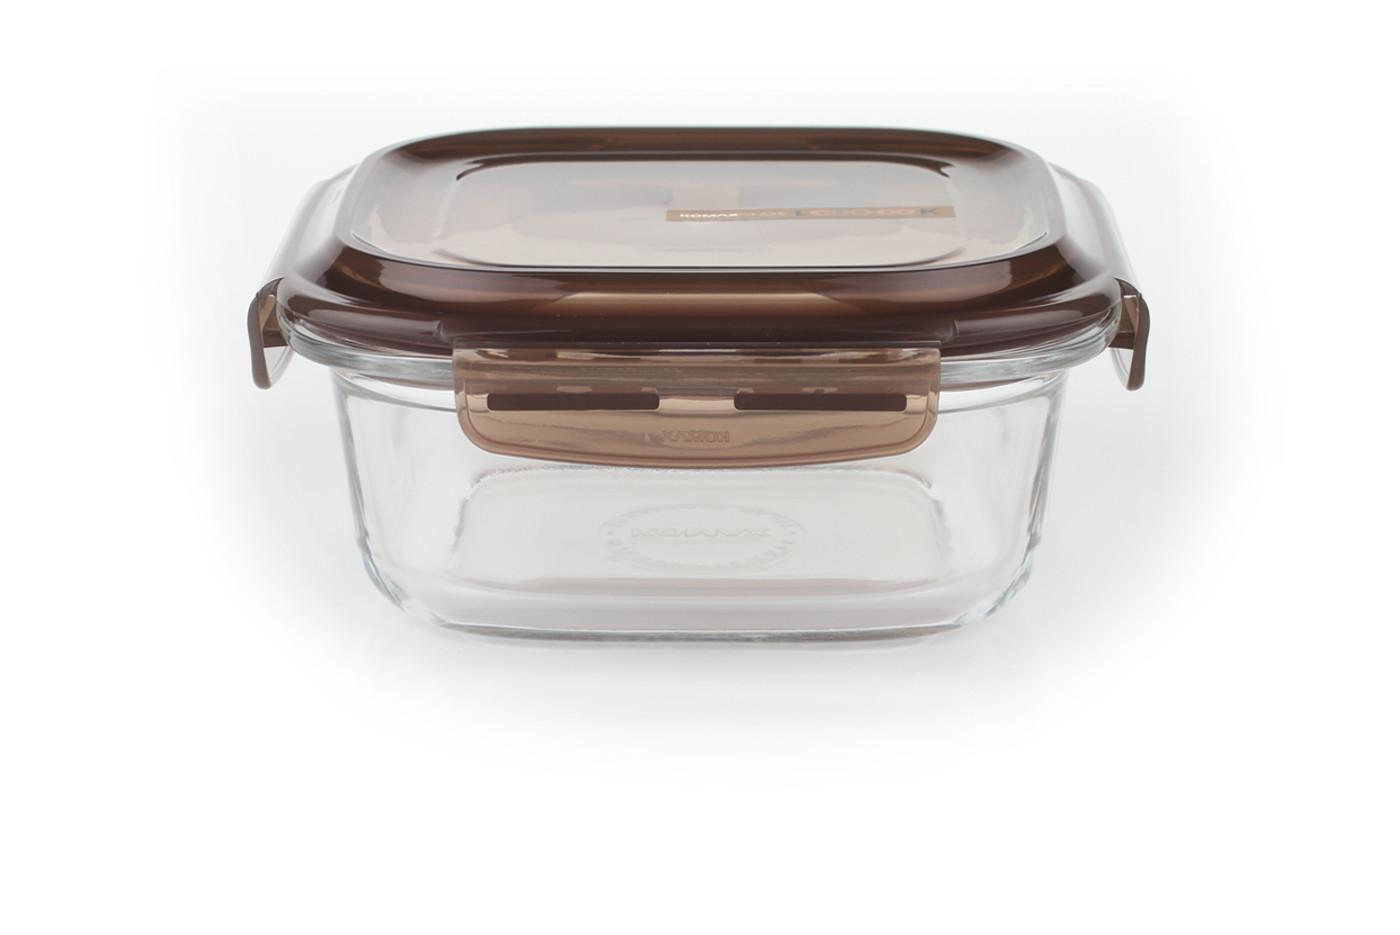 Komax Look Square Sealable Glass Food Storage Container